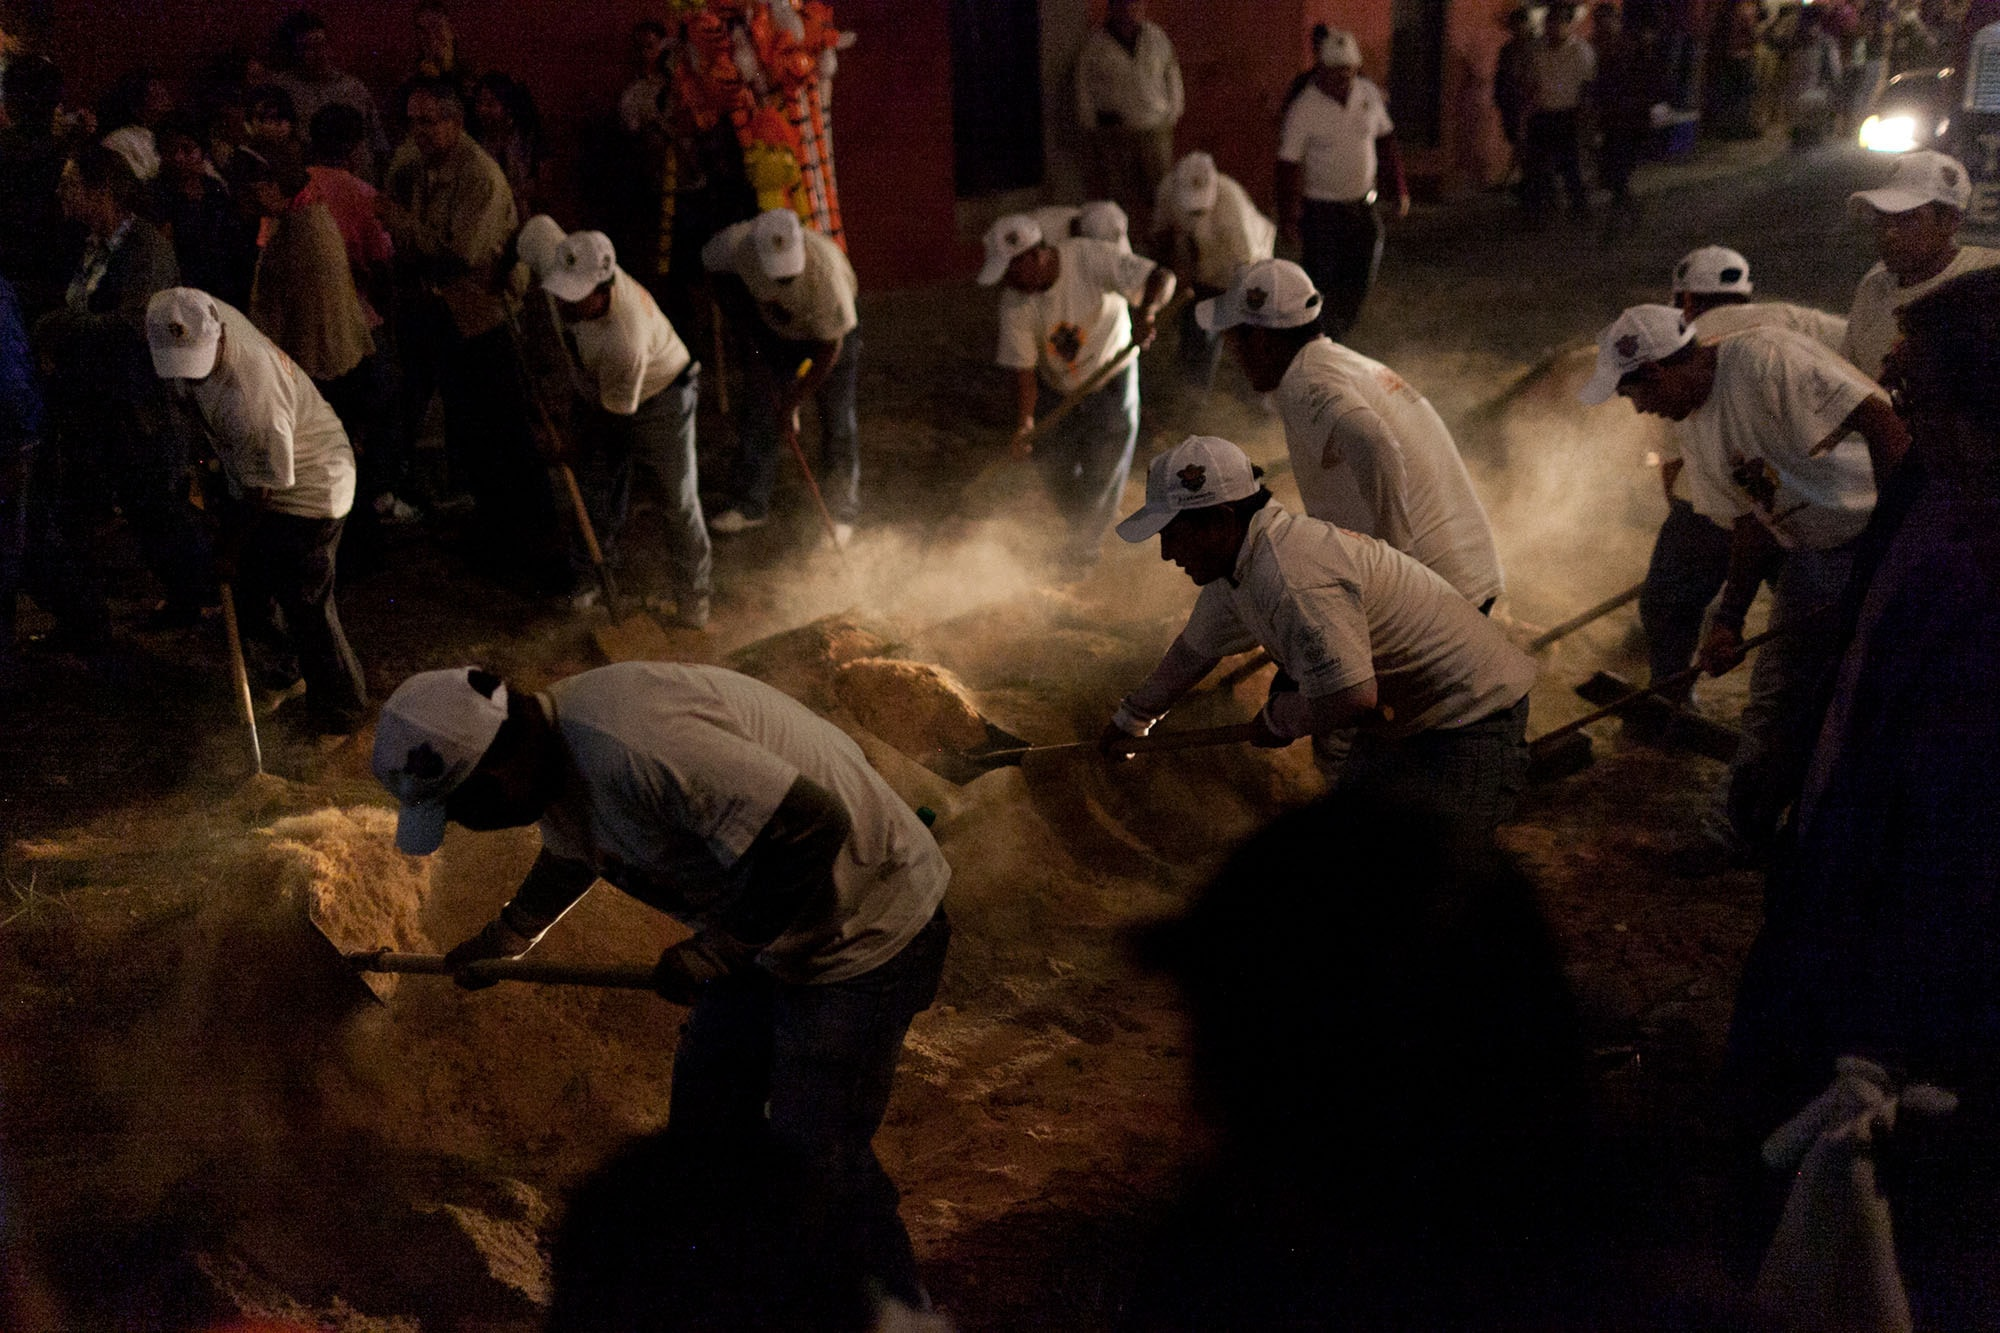 Alfombra sawdust carpet at a procession for Semana Santa in Antigua, Guatemala.